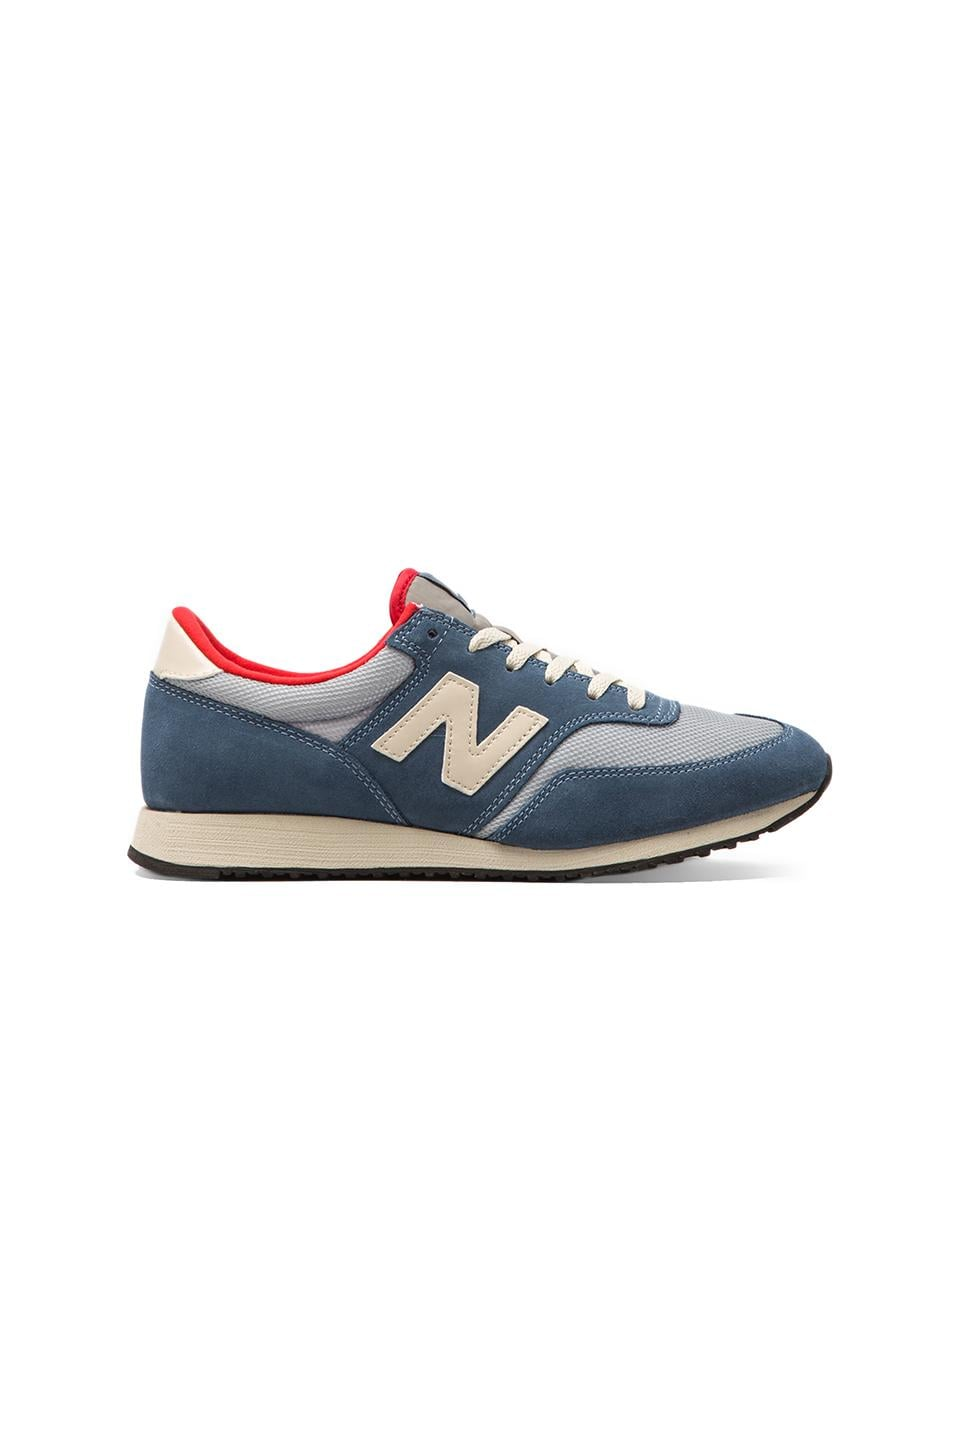 New Balance CM620 in Blue/Grey